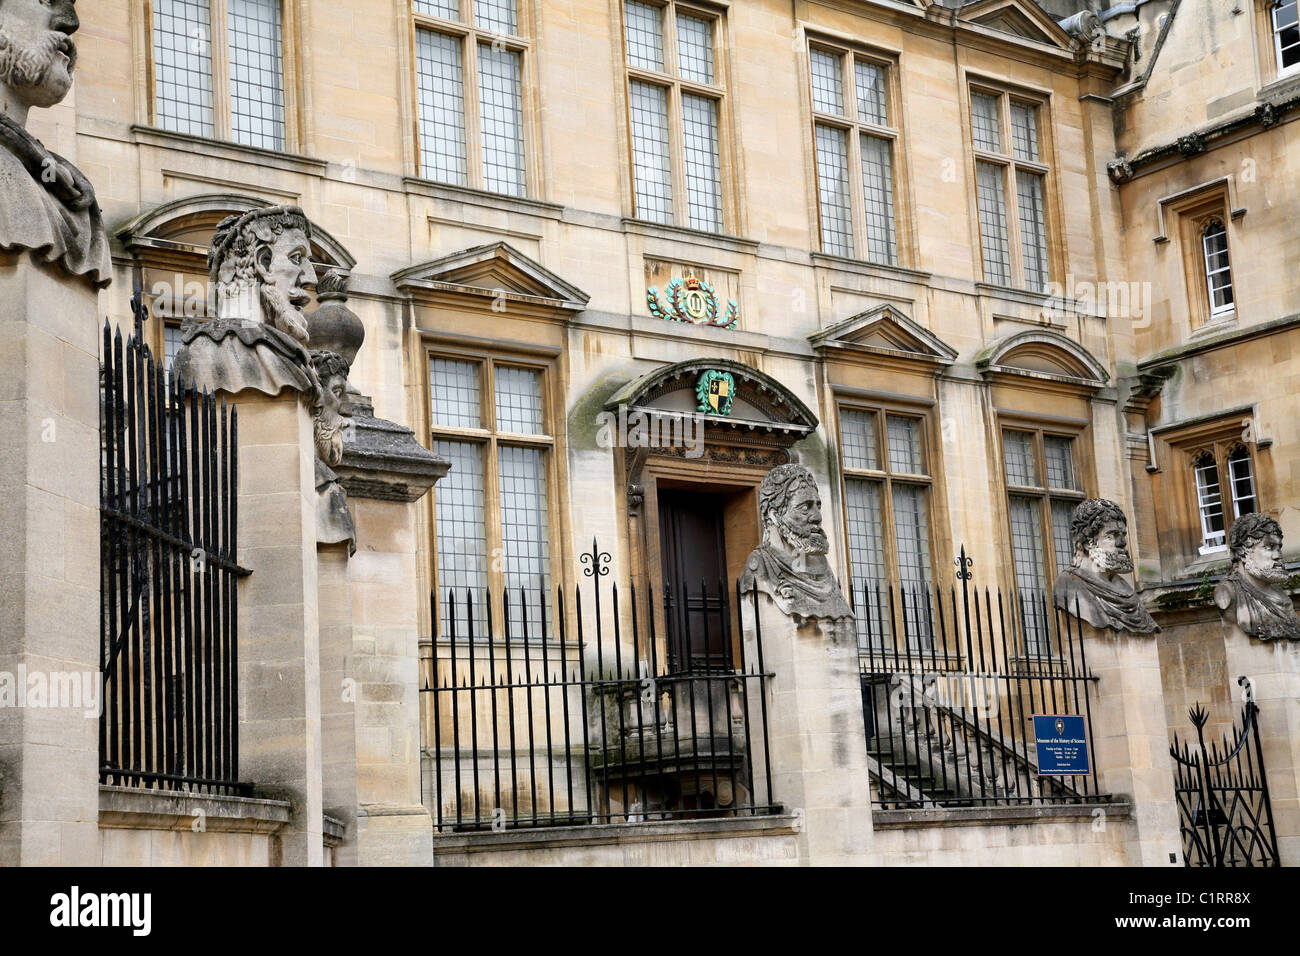 Museum of the History of Science, Oxford - Stock Image